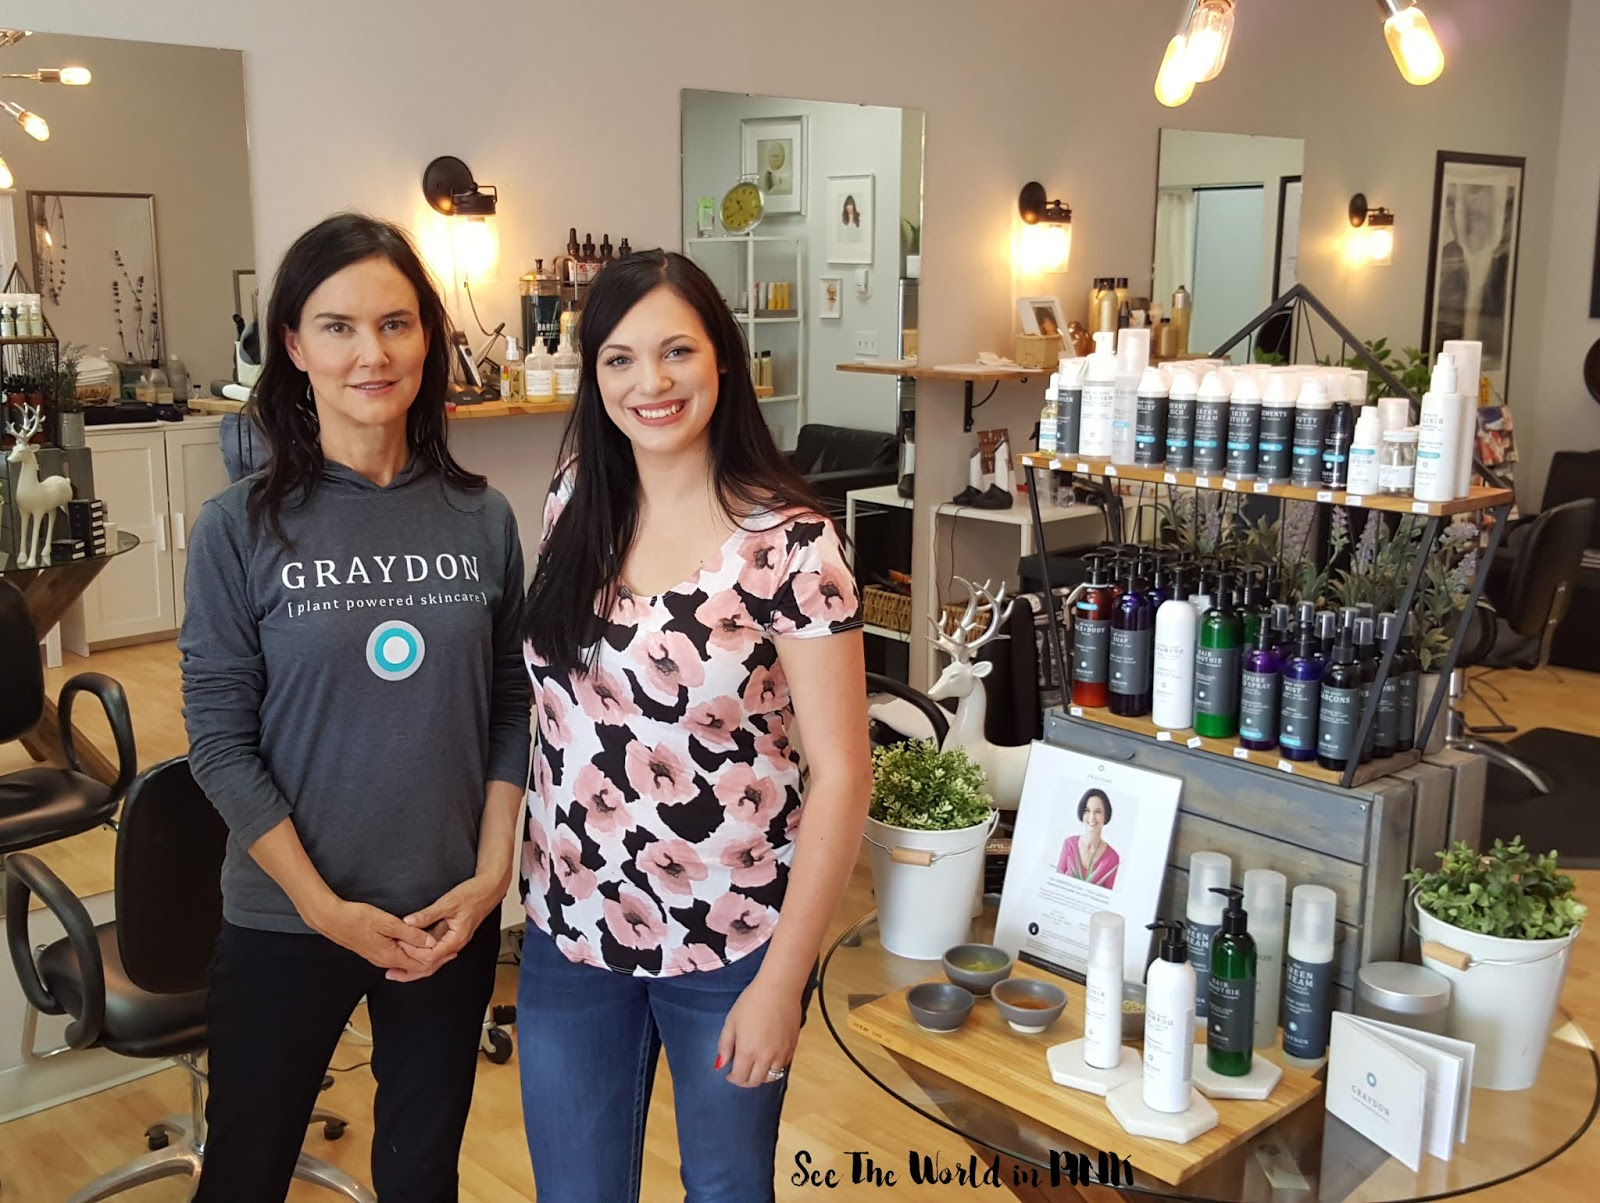 Graydon Plant Powered Skincare - Hair Event at Oak and Tonic, Calgary!